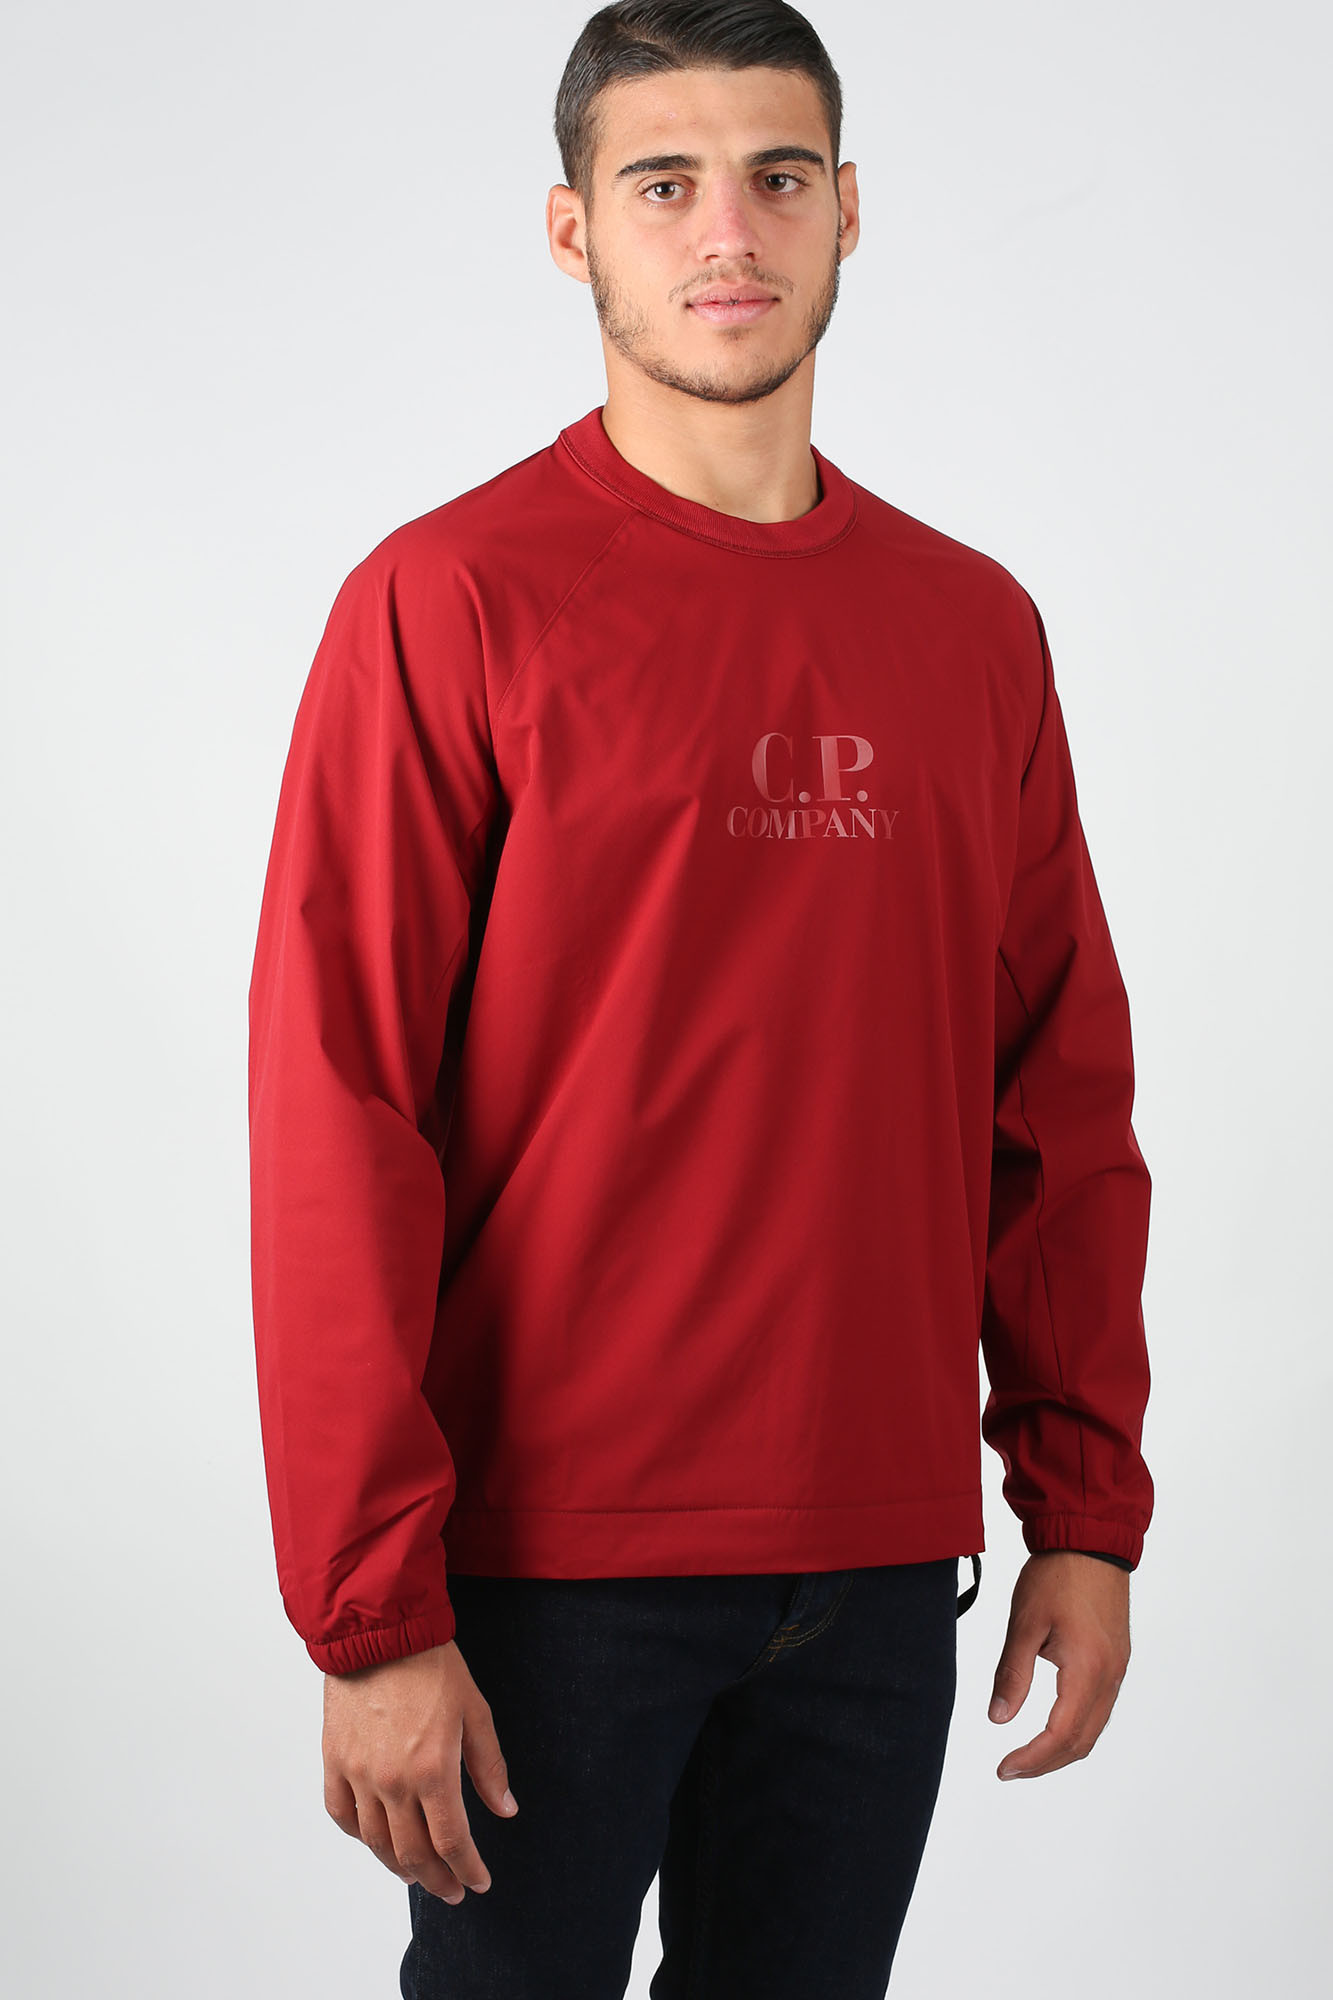 SWEAT-SHIRT C.P. COMPANY ROUGE S025A4117A-576